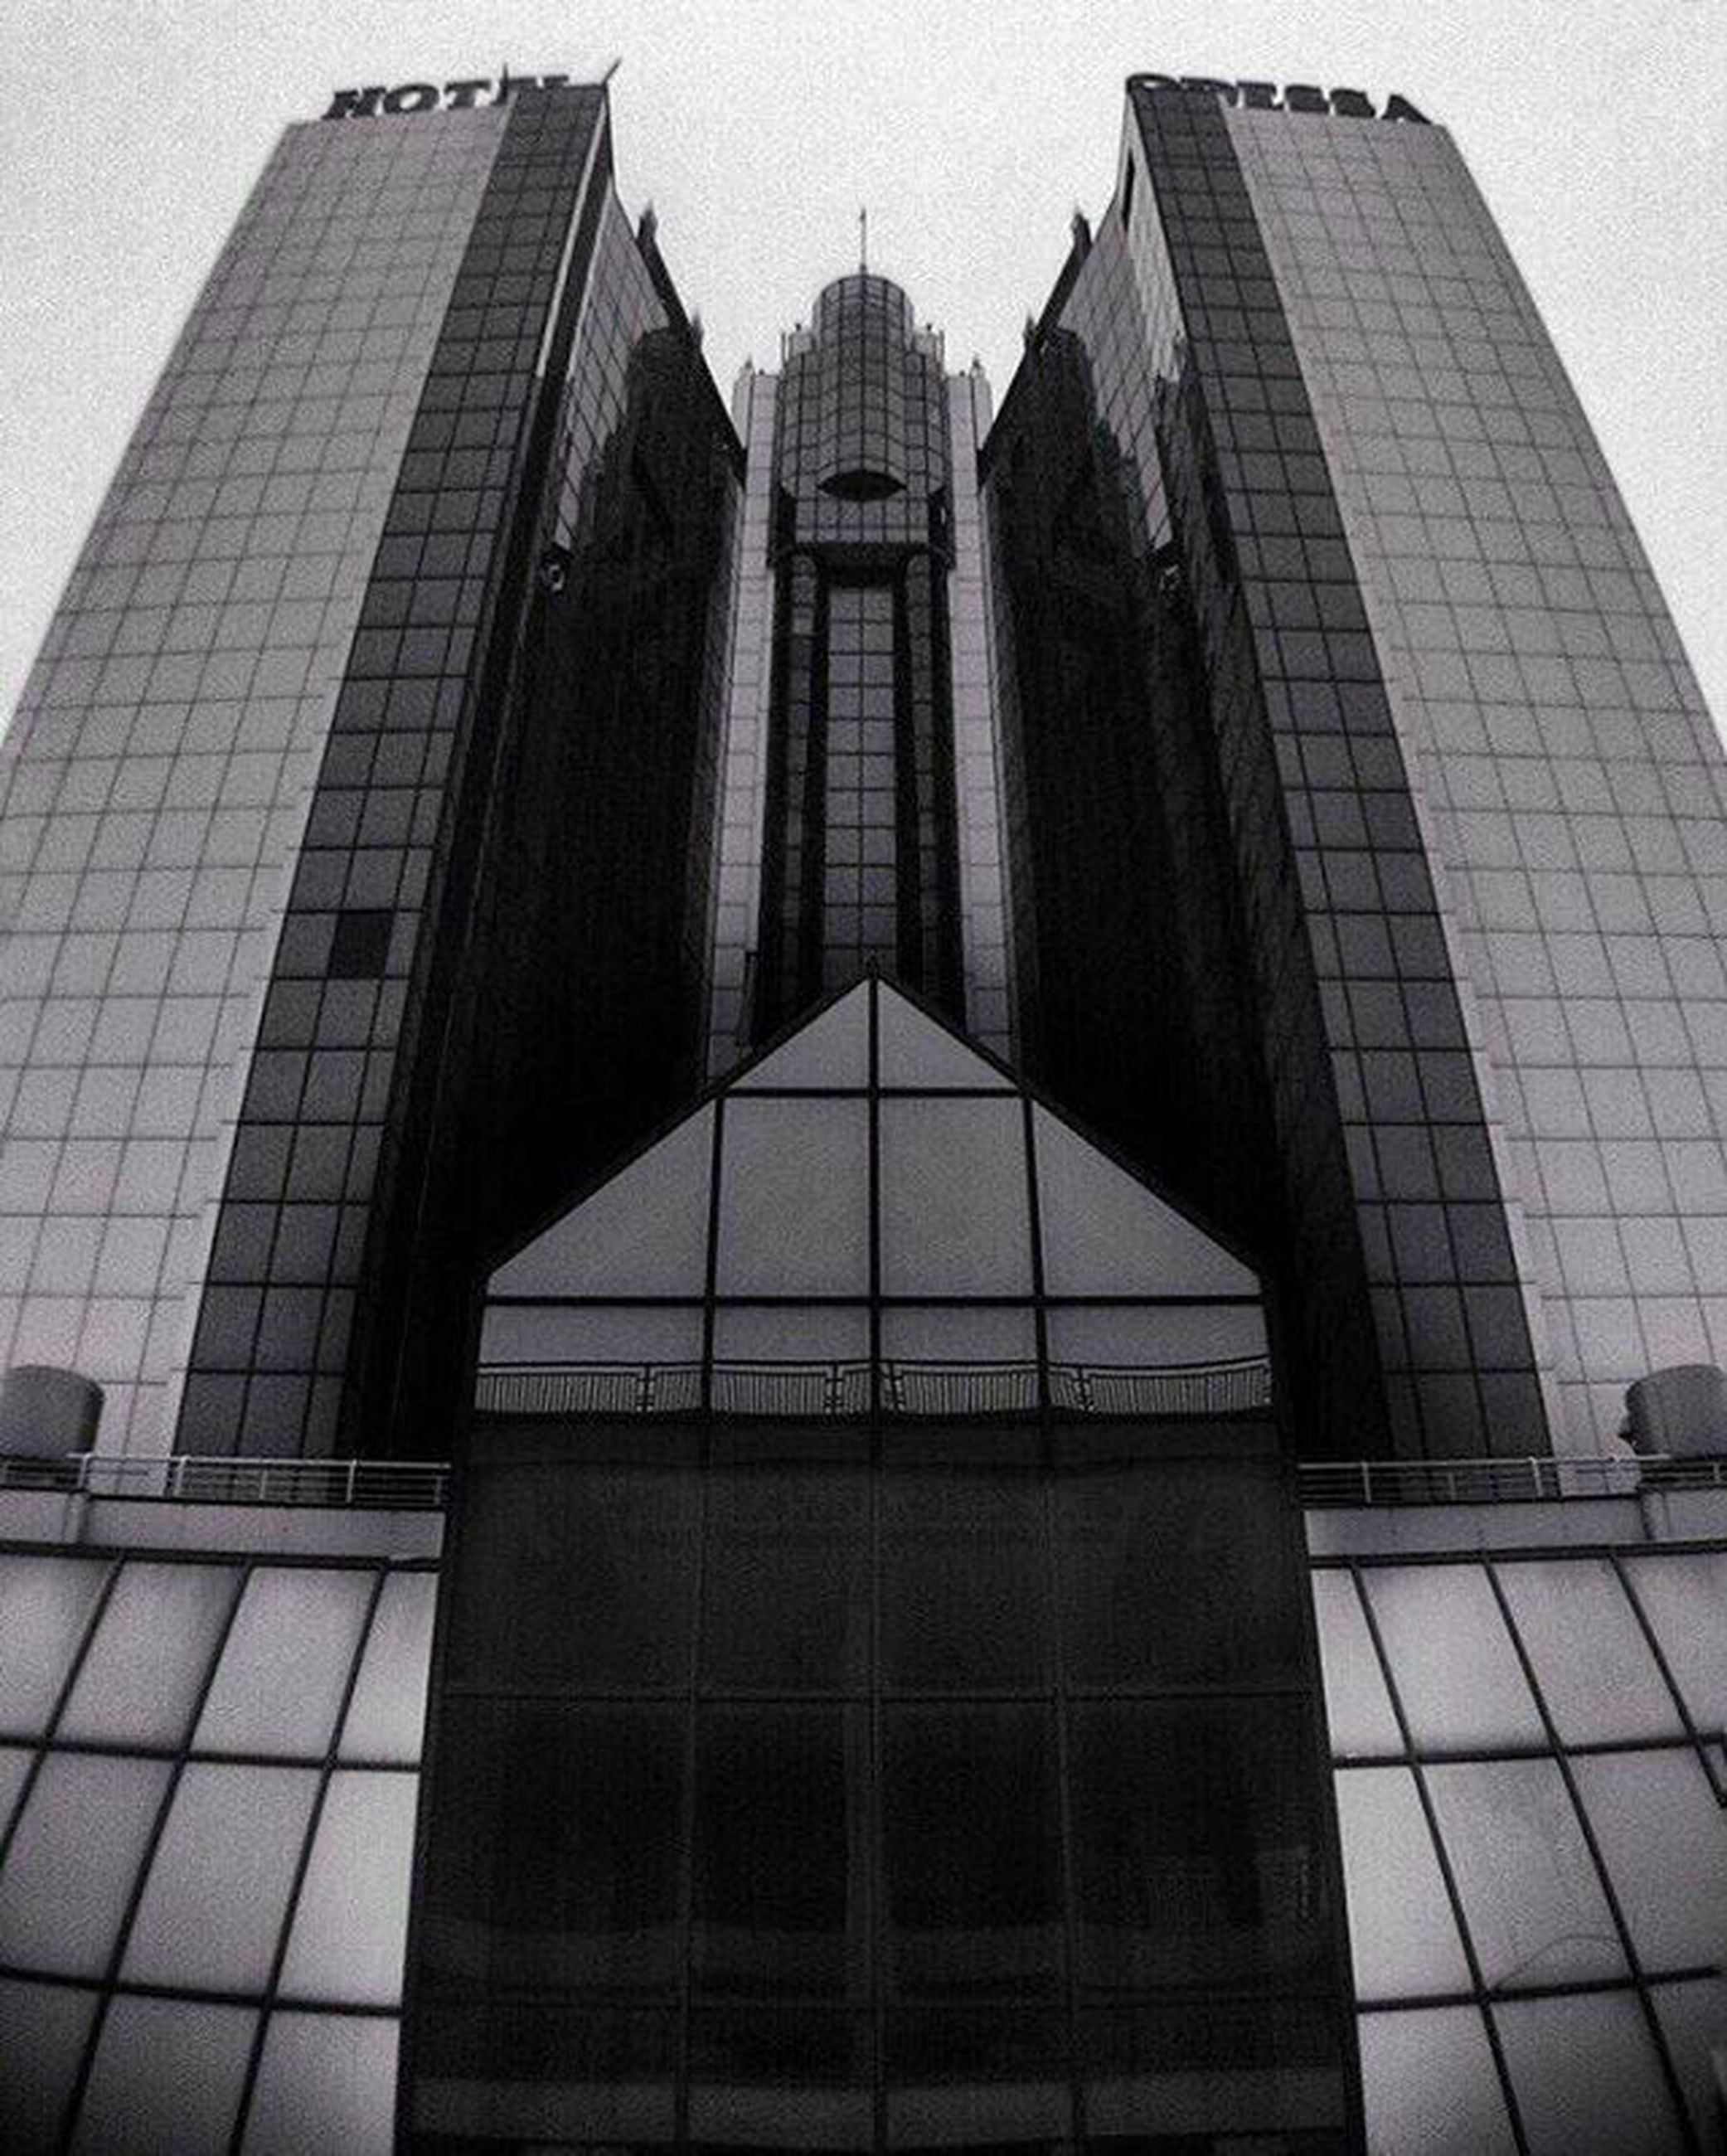 architecture, building exterior, built structure, low angle view, modern, office building, skyscraper, city, tall - high, tower, glass - material, reflection, building, clear sky, window, sky, day, no people, outdoors, city life